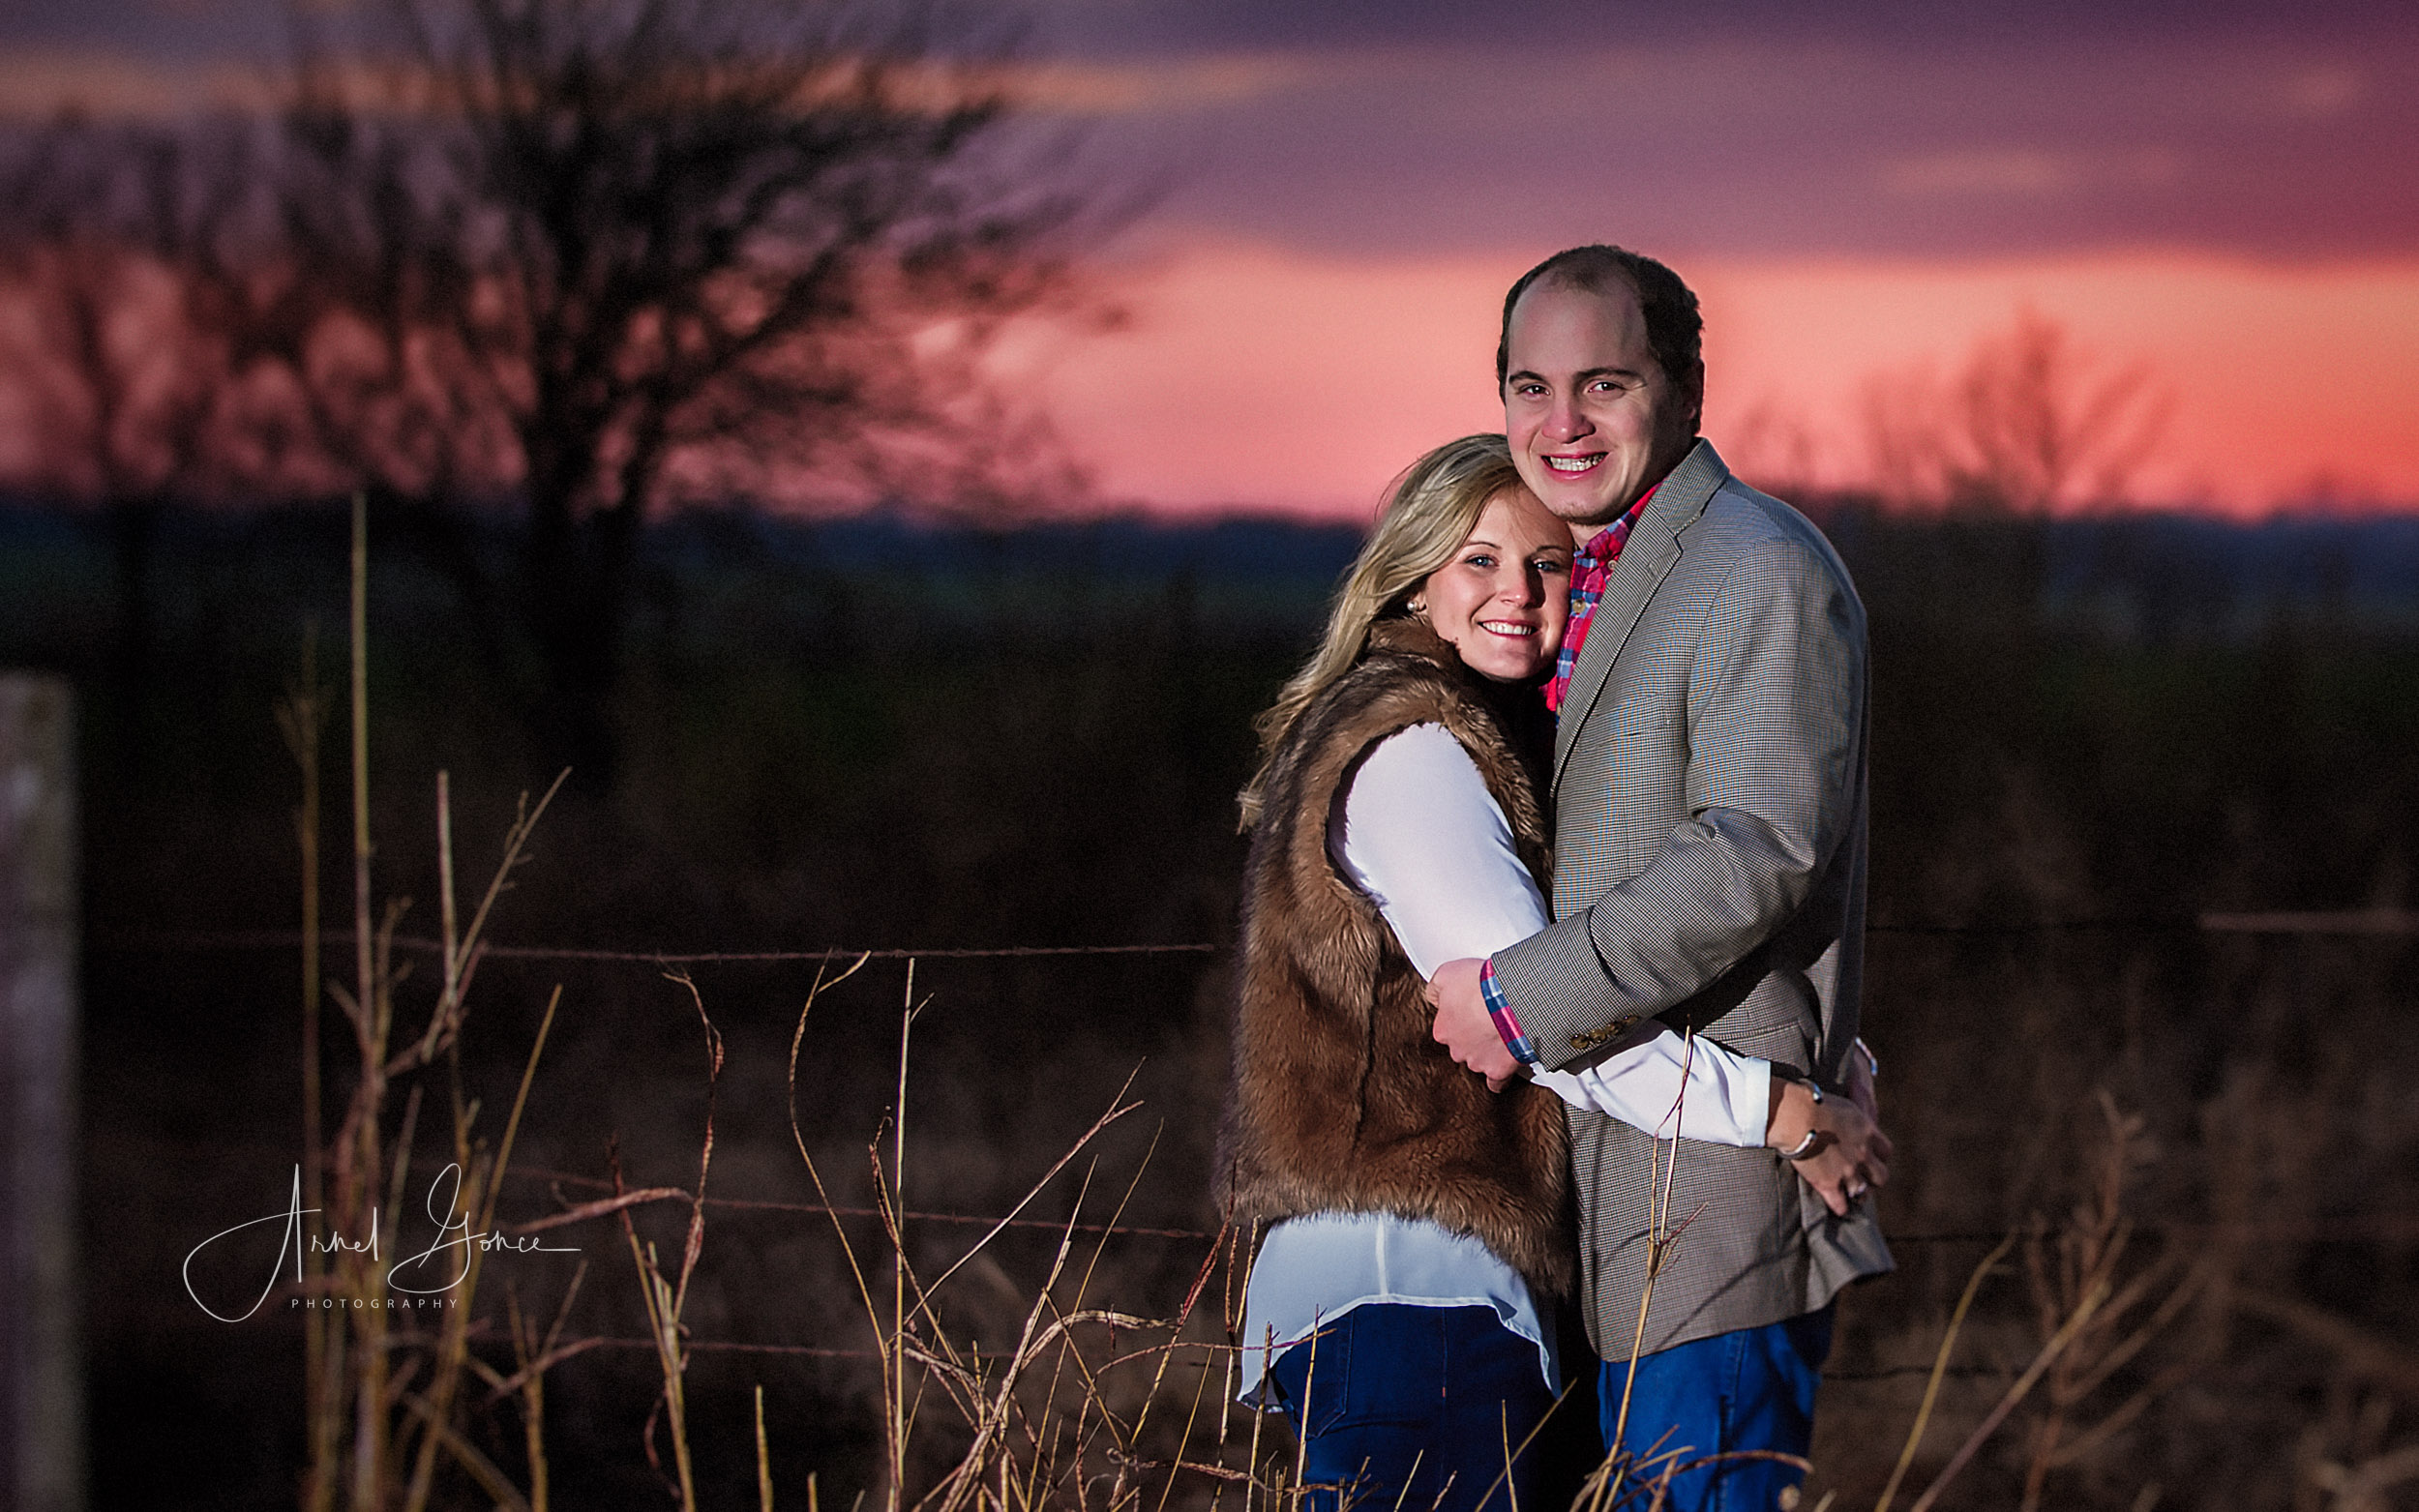 Newly engaged couple at sunset during their engagement photography session in Oklahoma.